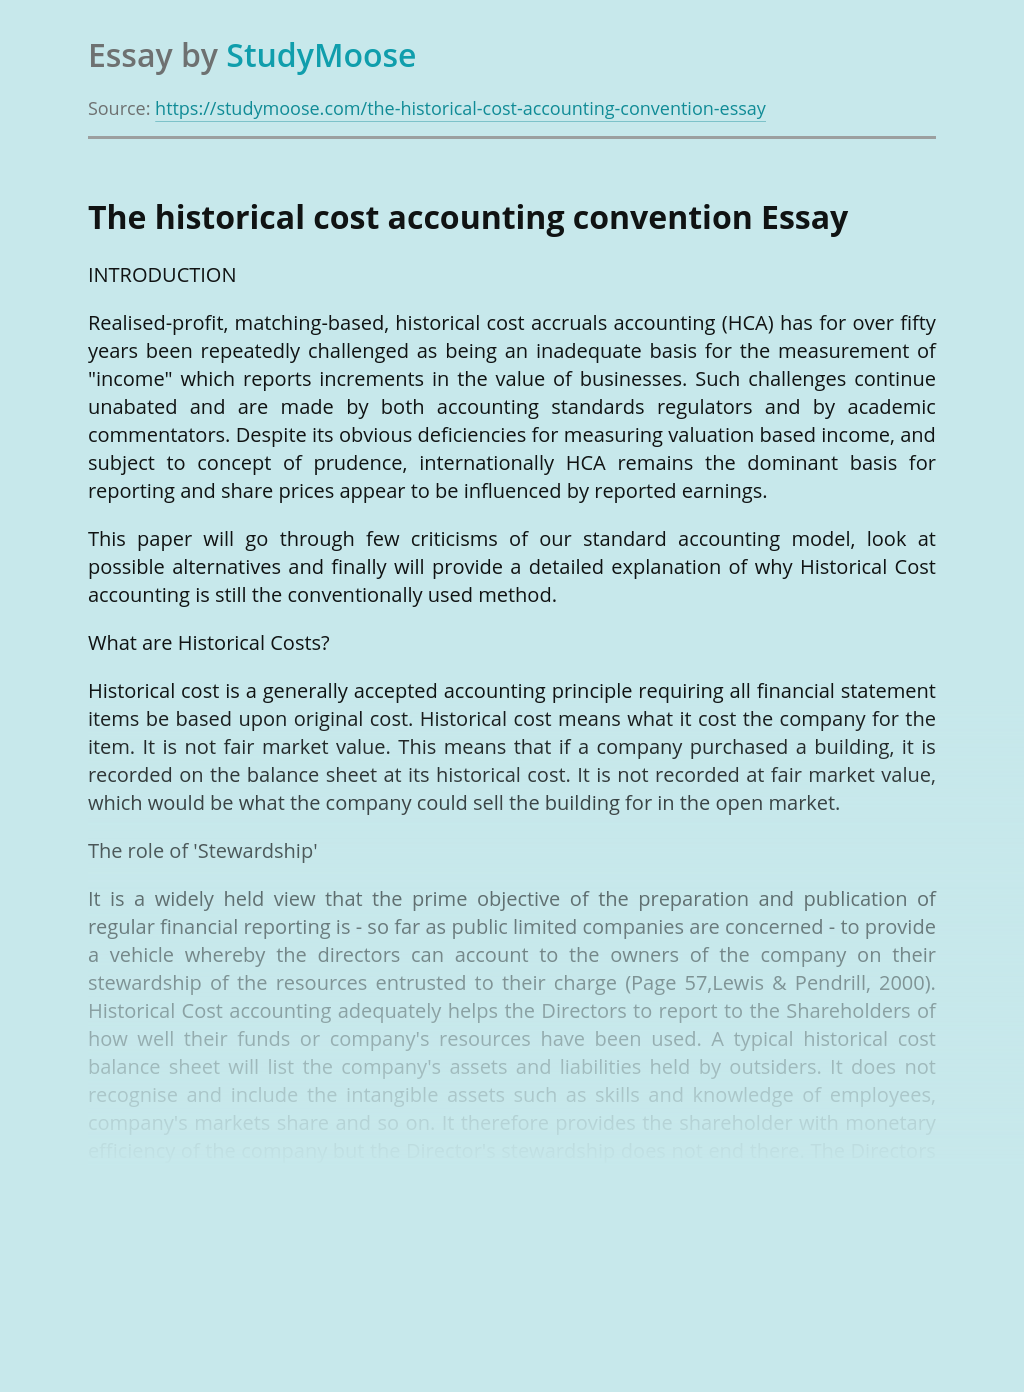 The historical cost accounting convention